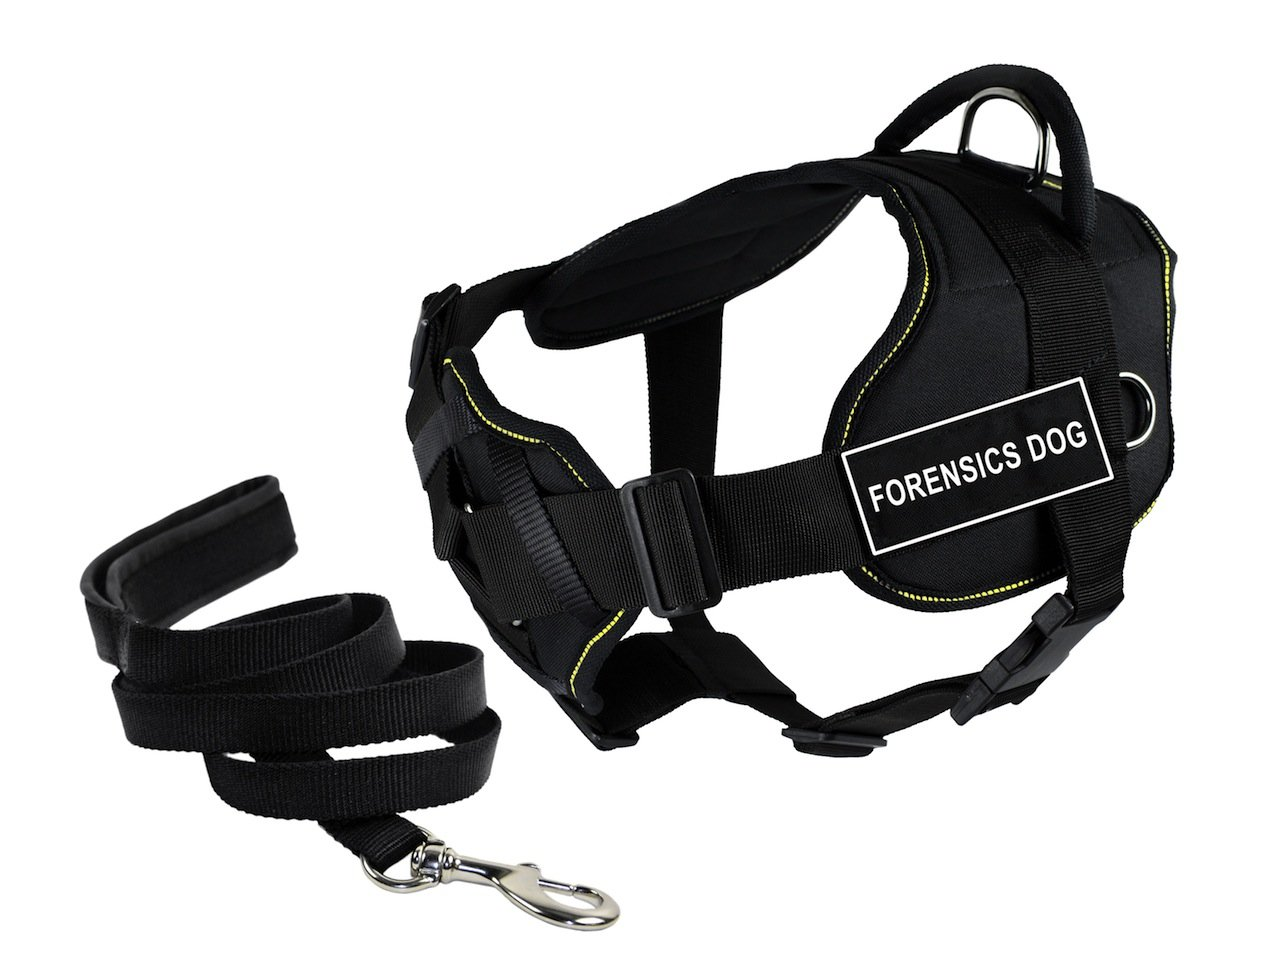 Dean & Tyler's DT Fun Chest Support FORENSICS DOG Harness, Small, with 6 ft Padded Puppy Leash.